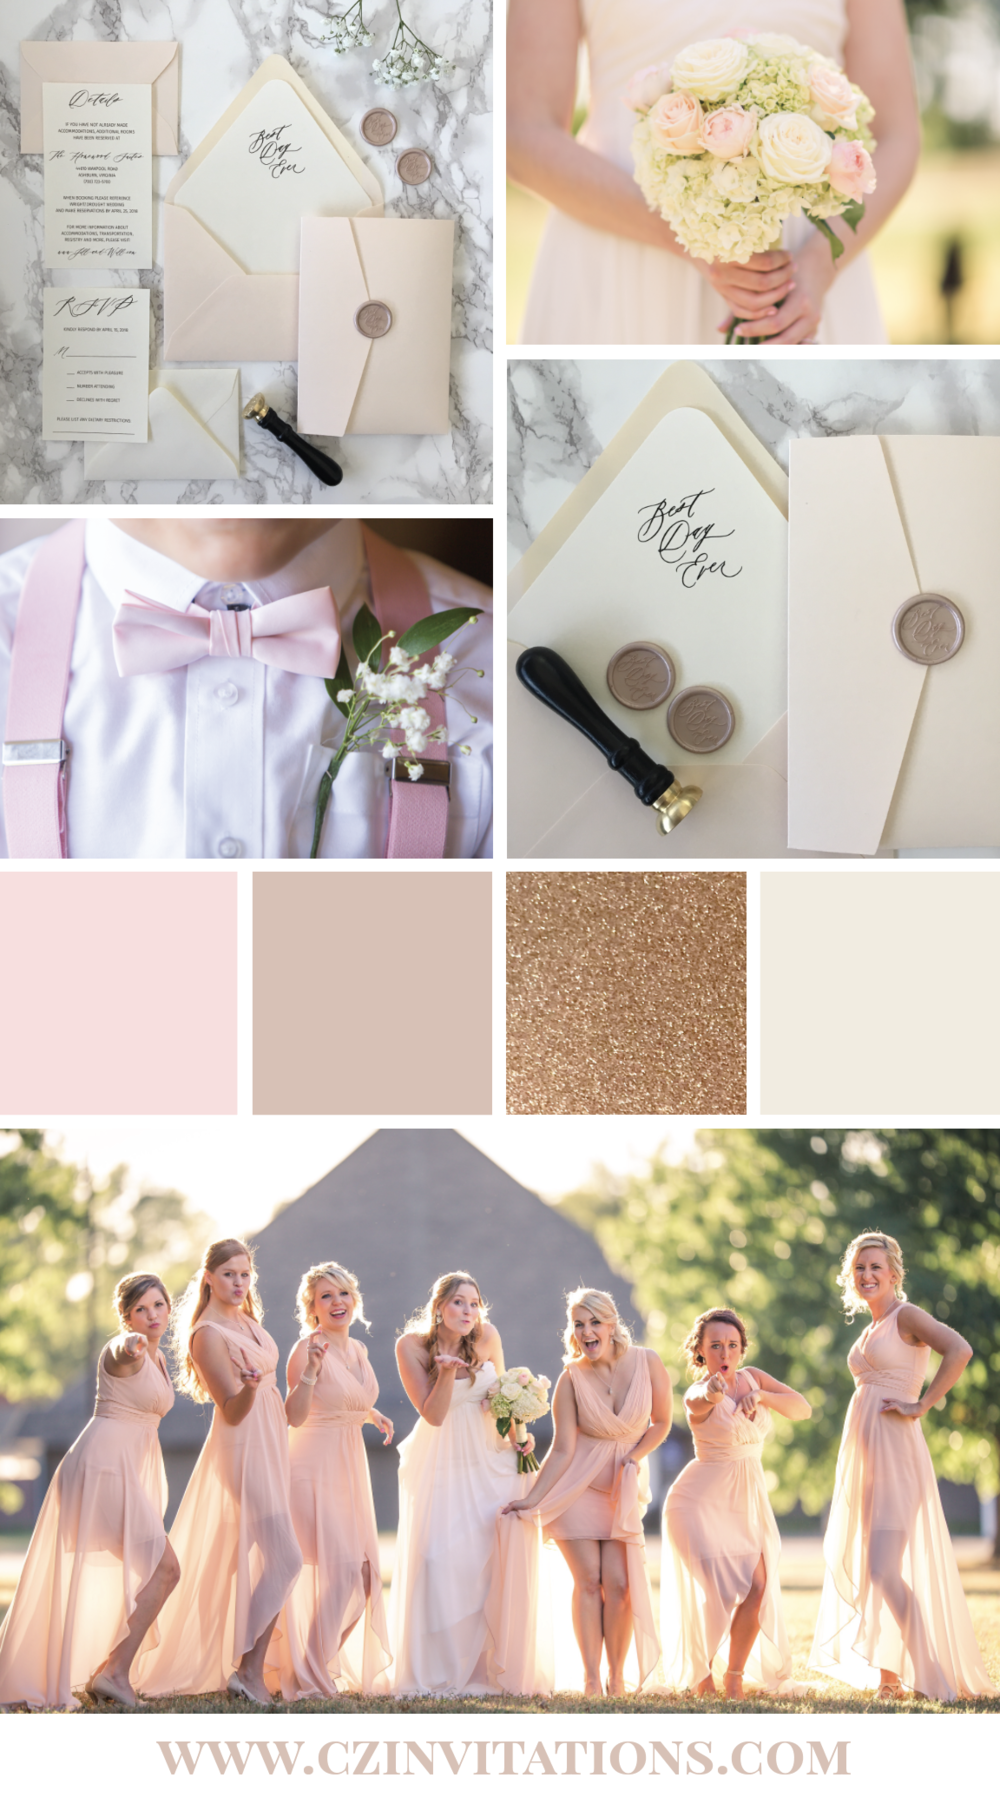 Blush is a classic and unique color that can be paired with a variety of colors, especially for a wedding! This color palette features Blush, Ivory, Champagne and Rose Gold Glitter for a pop of sparkle and shine!